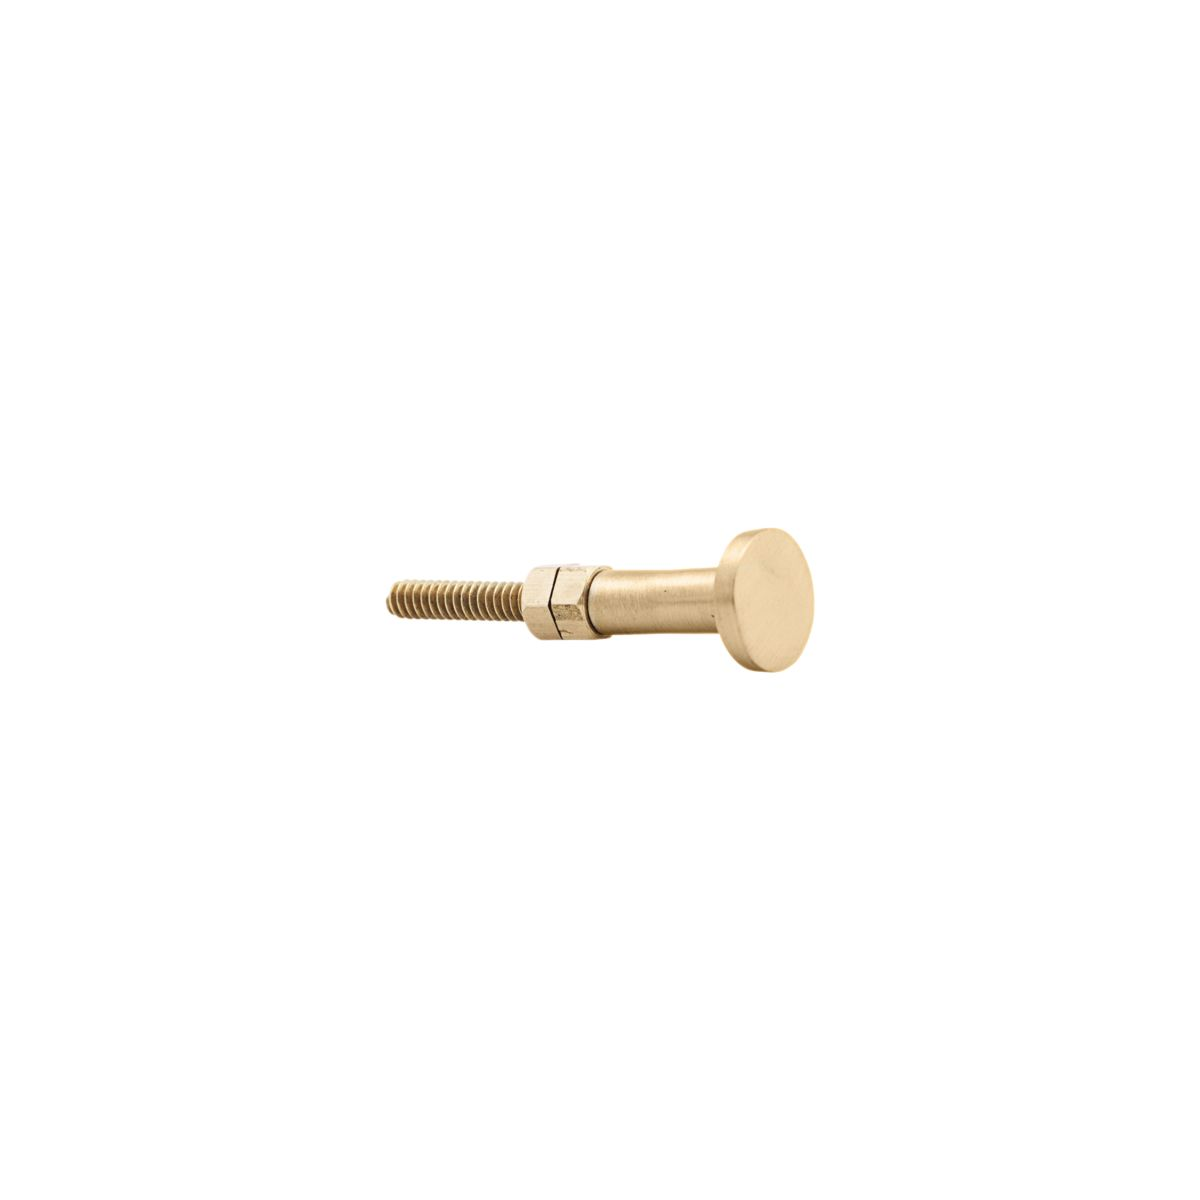 House doctor knopper til kommode, brass